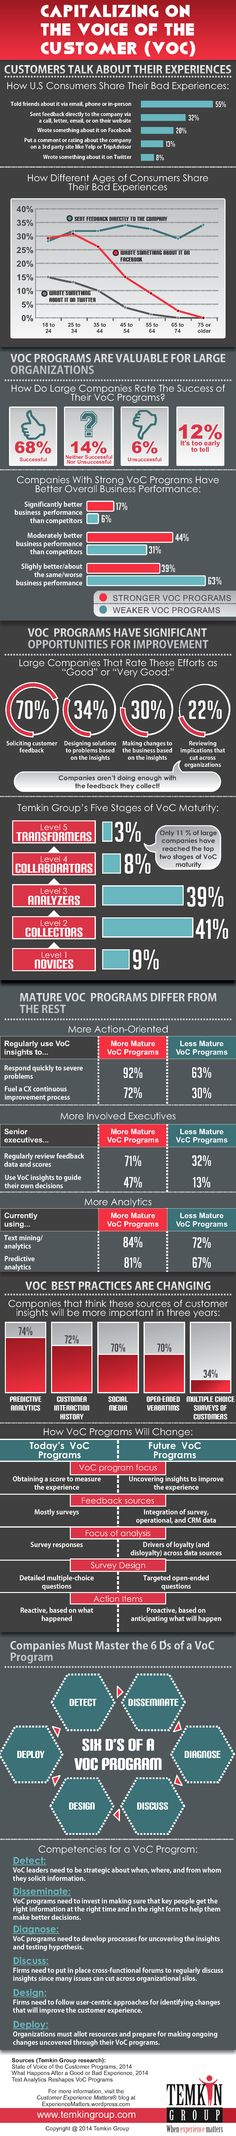 Voice of the customer programs are a cornerstone for most customer experience efforts. That's why Temkin Group put together this infographic with insights fromour research. Here's a poster version...